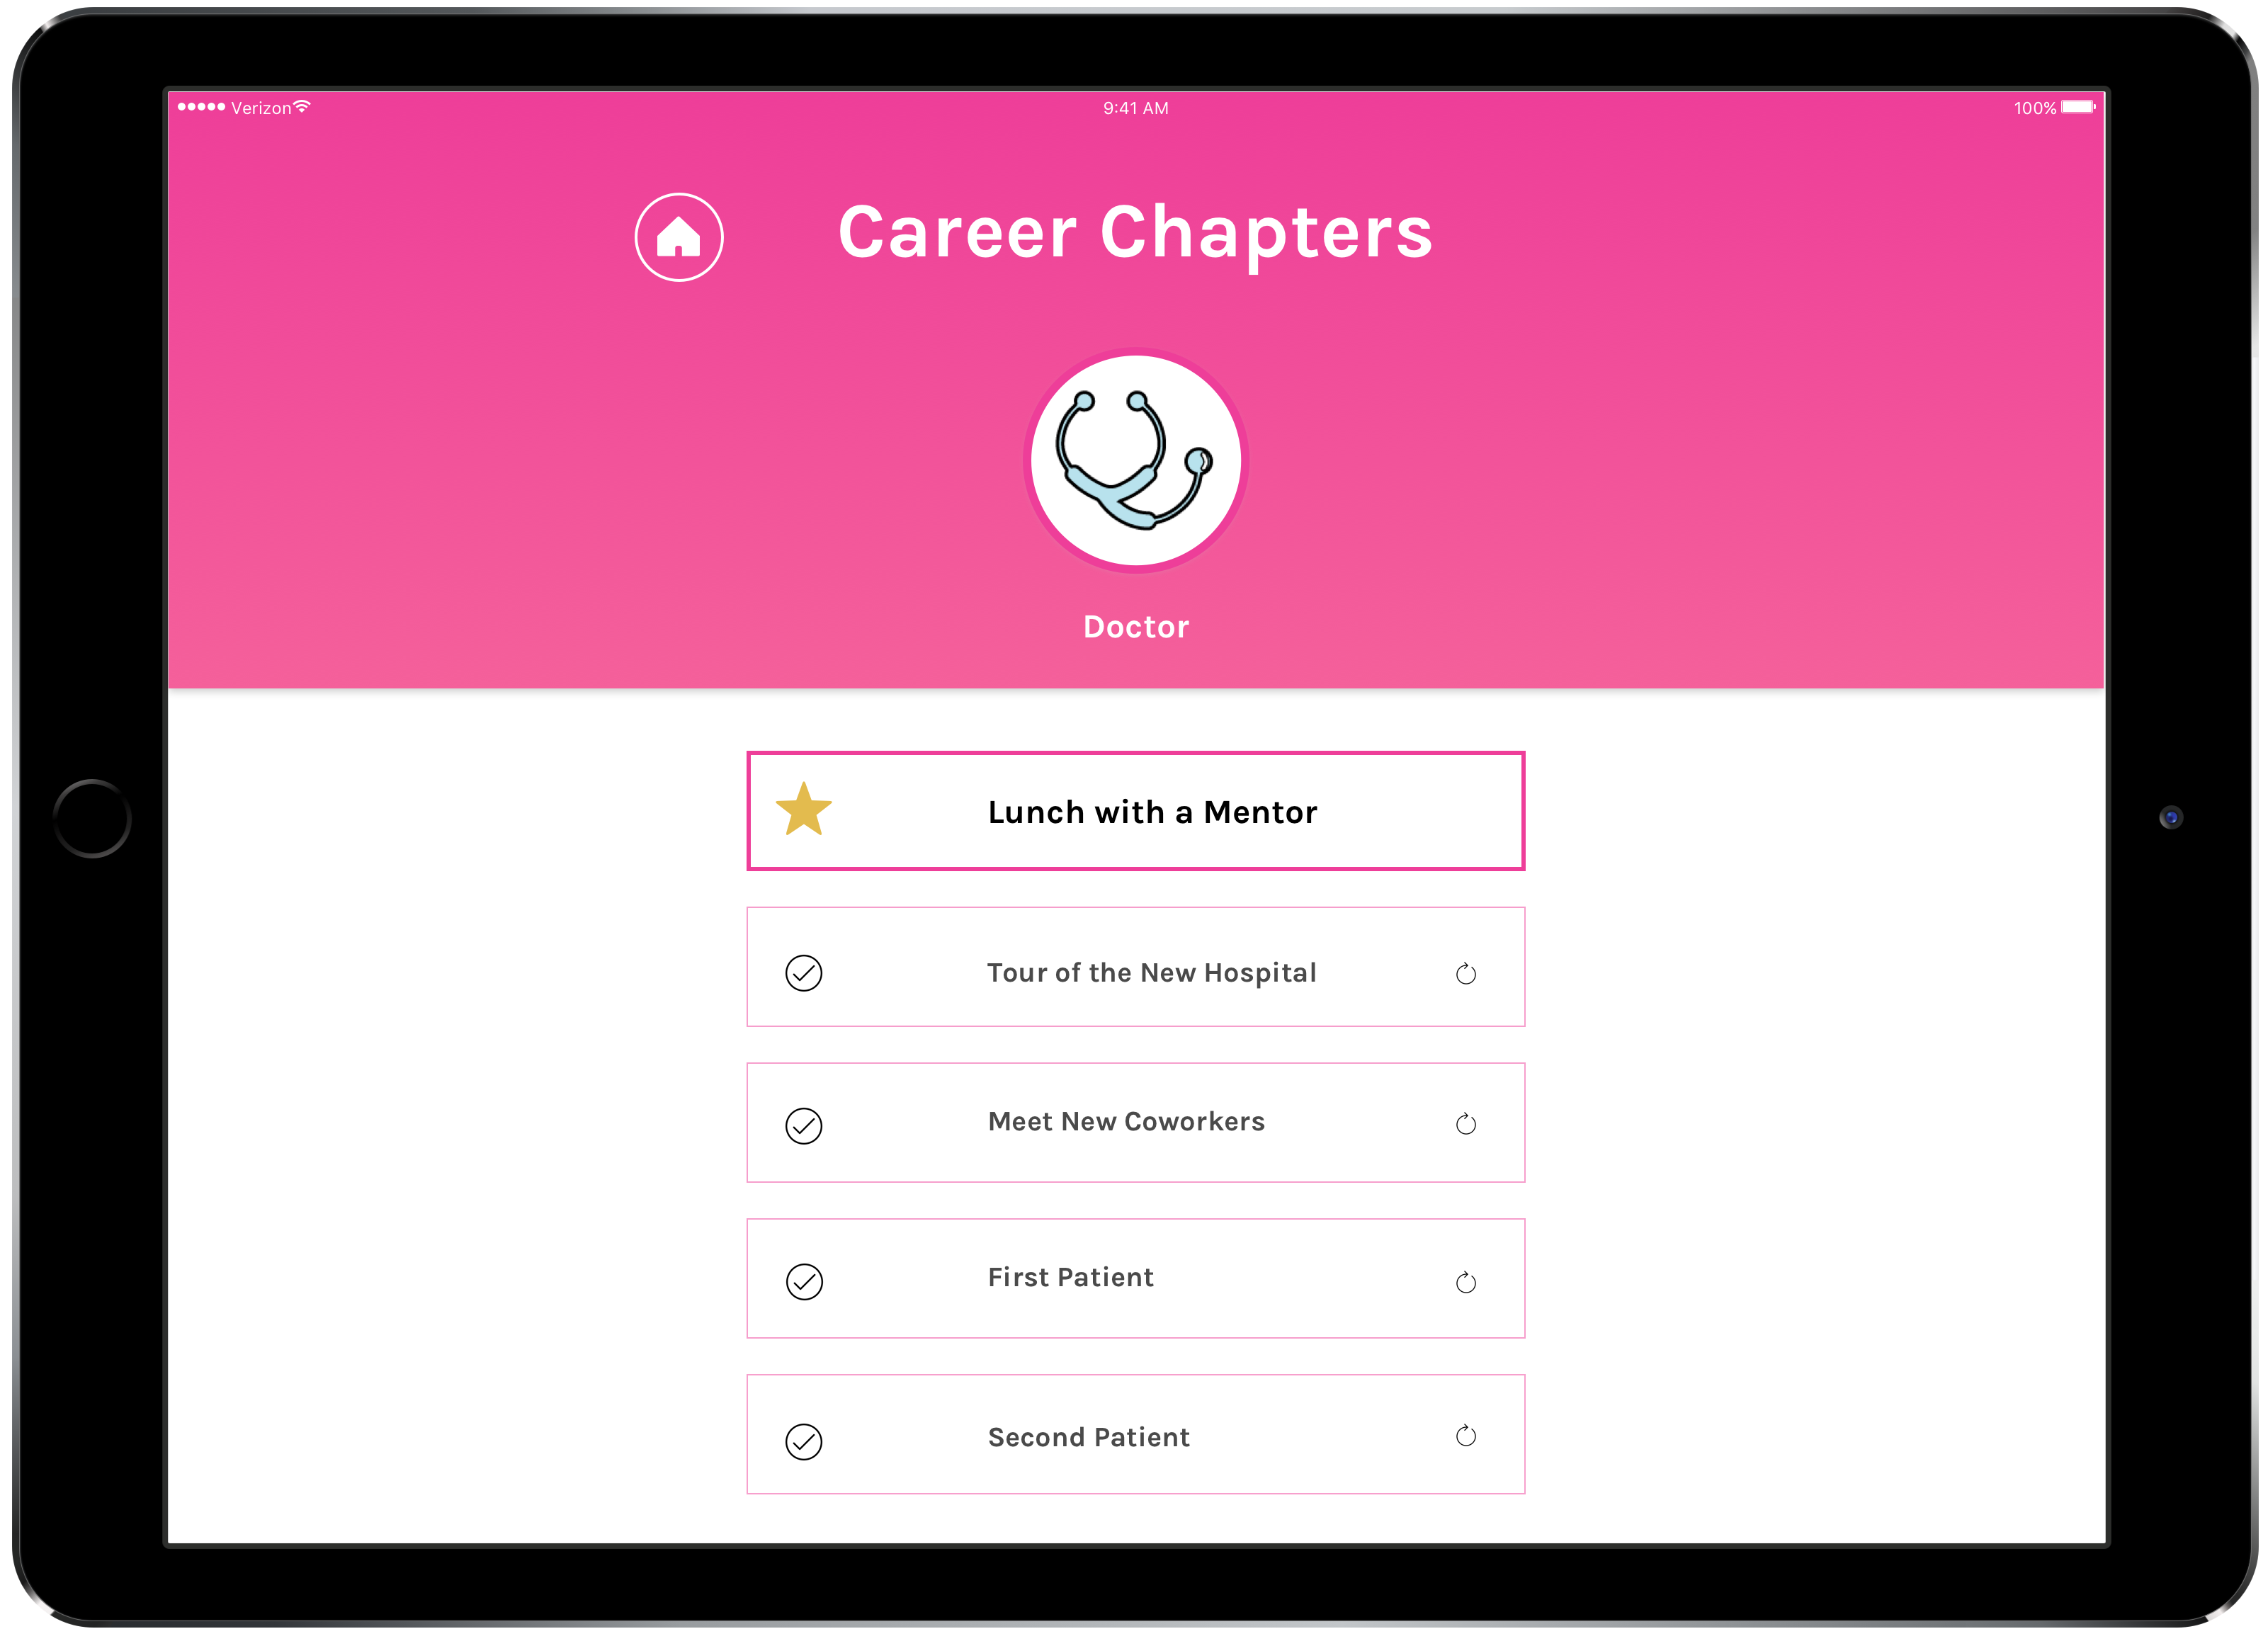 Career Chapters